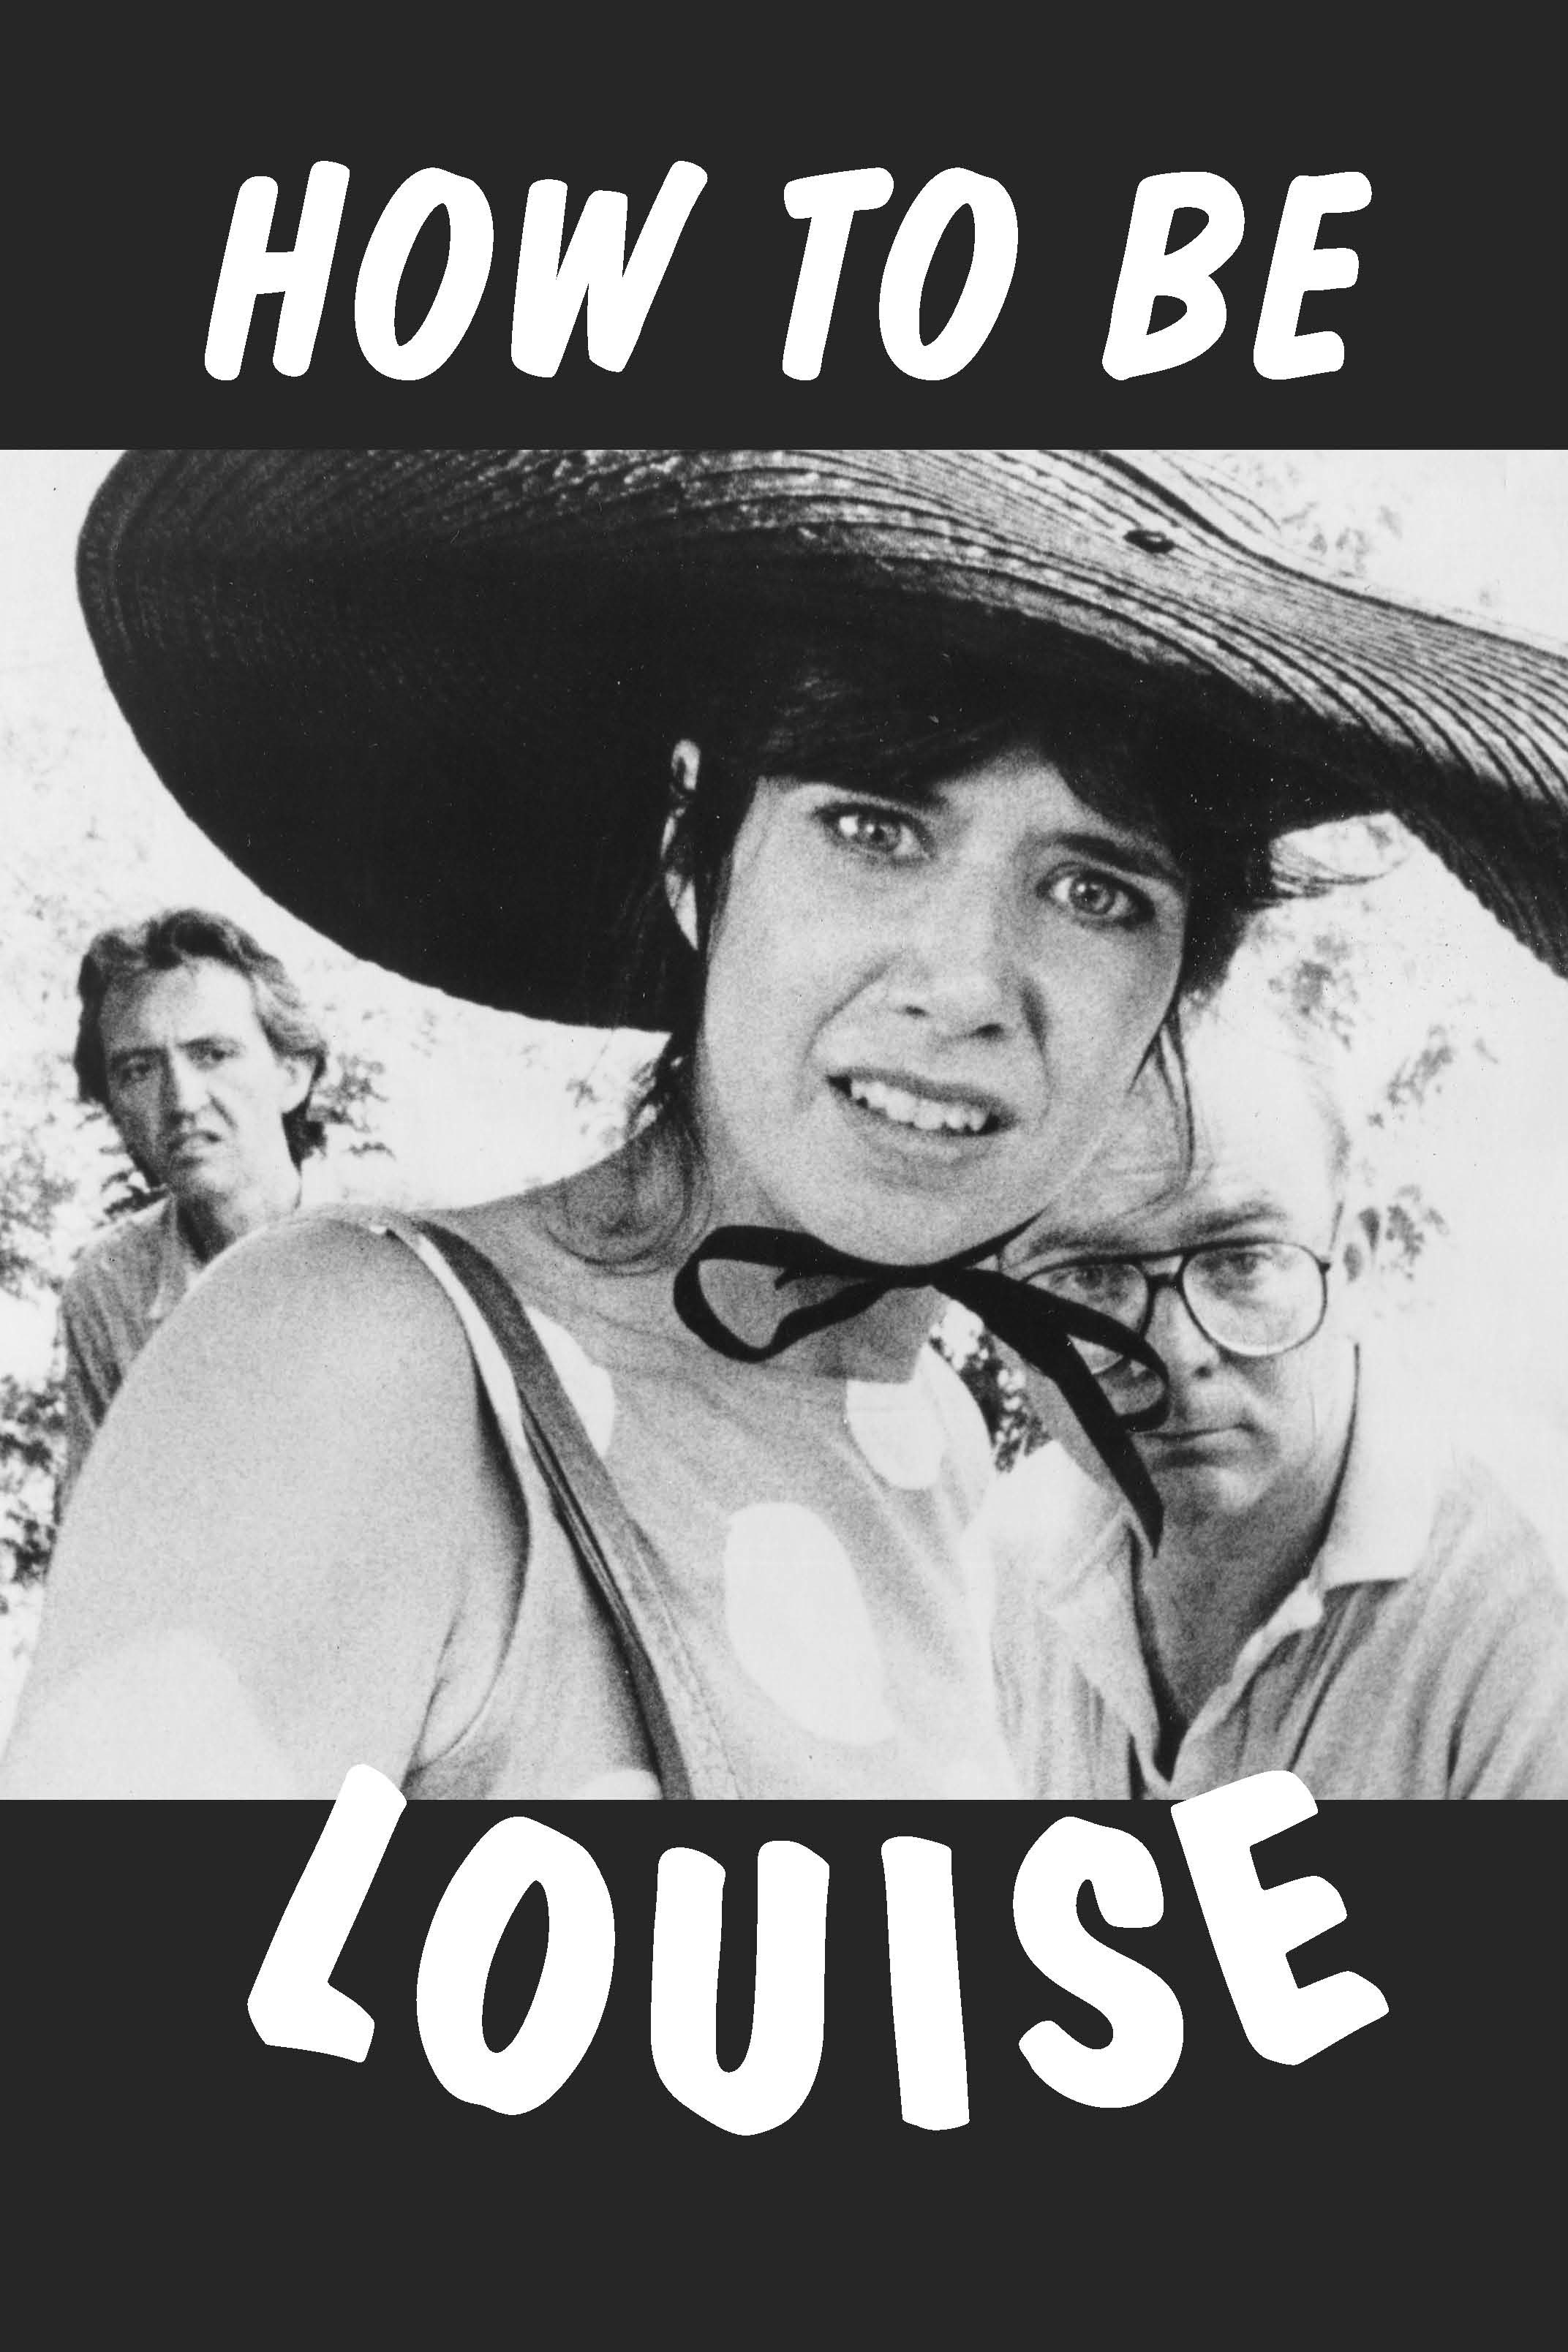 How to be Louise Poster v2.jpg